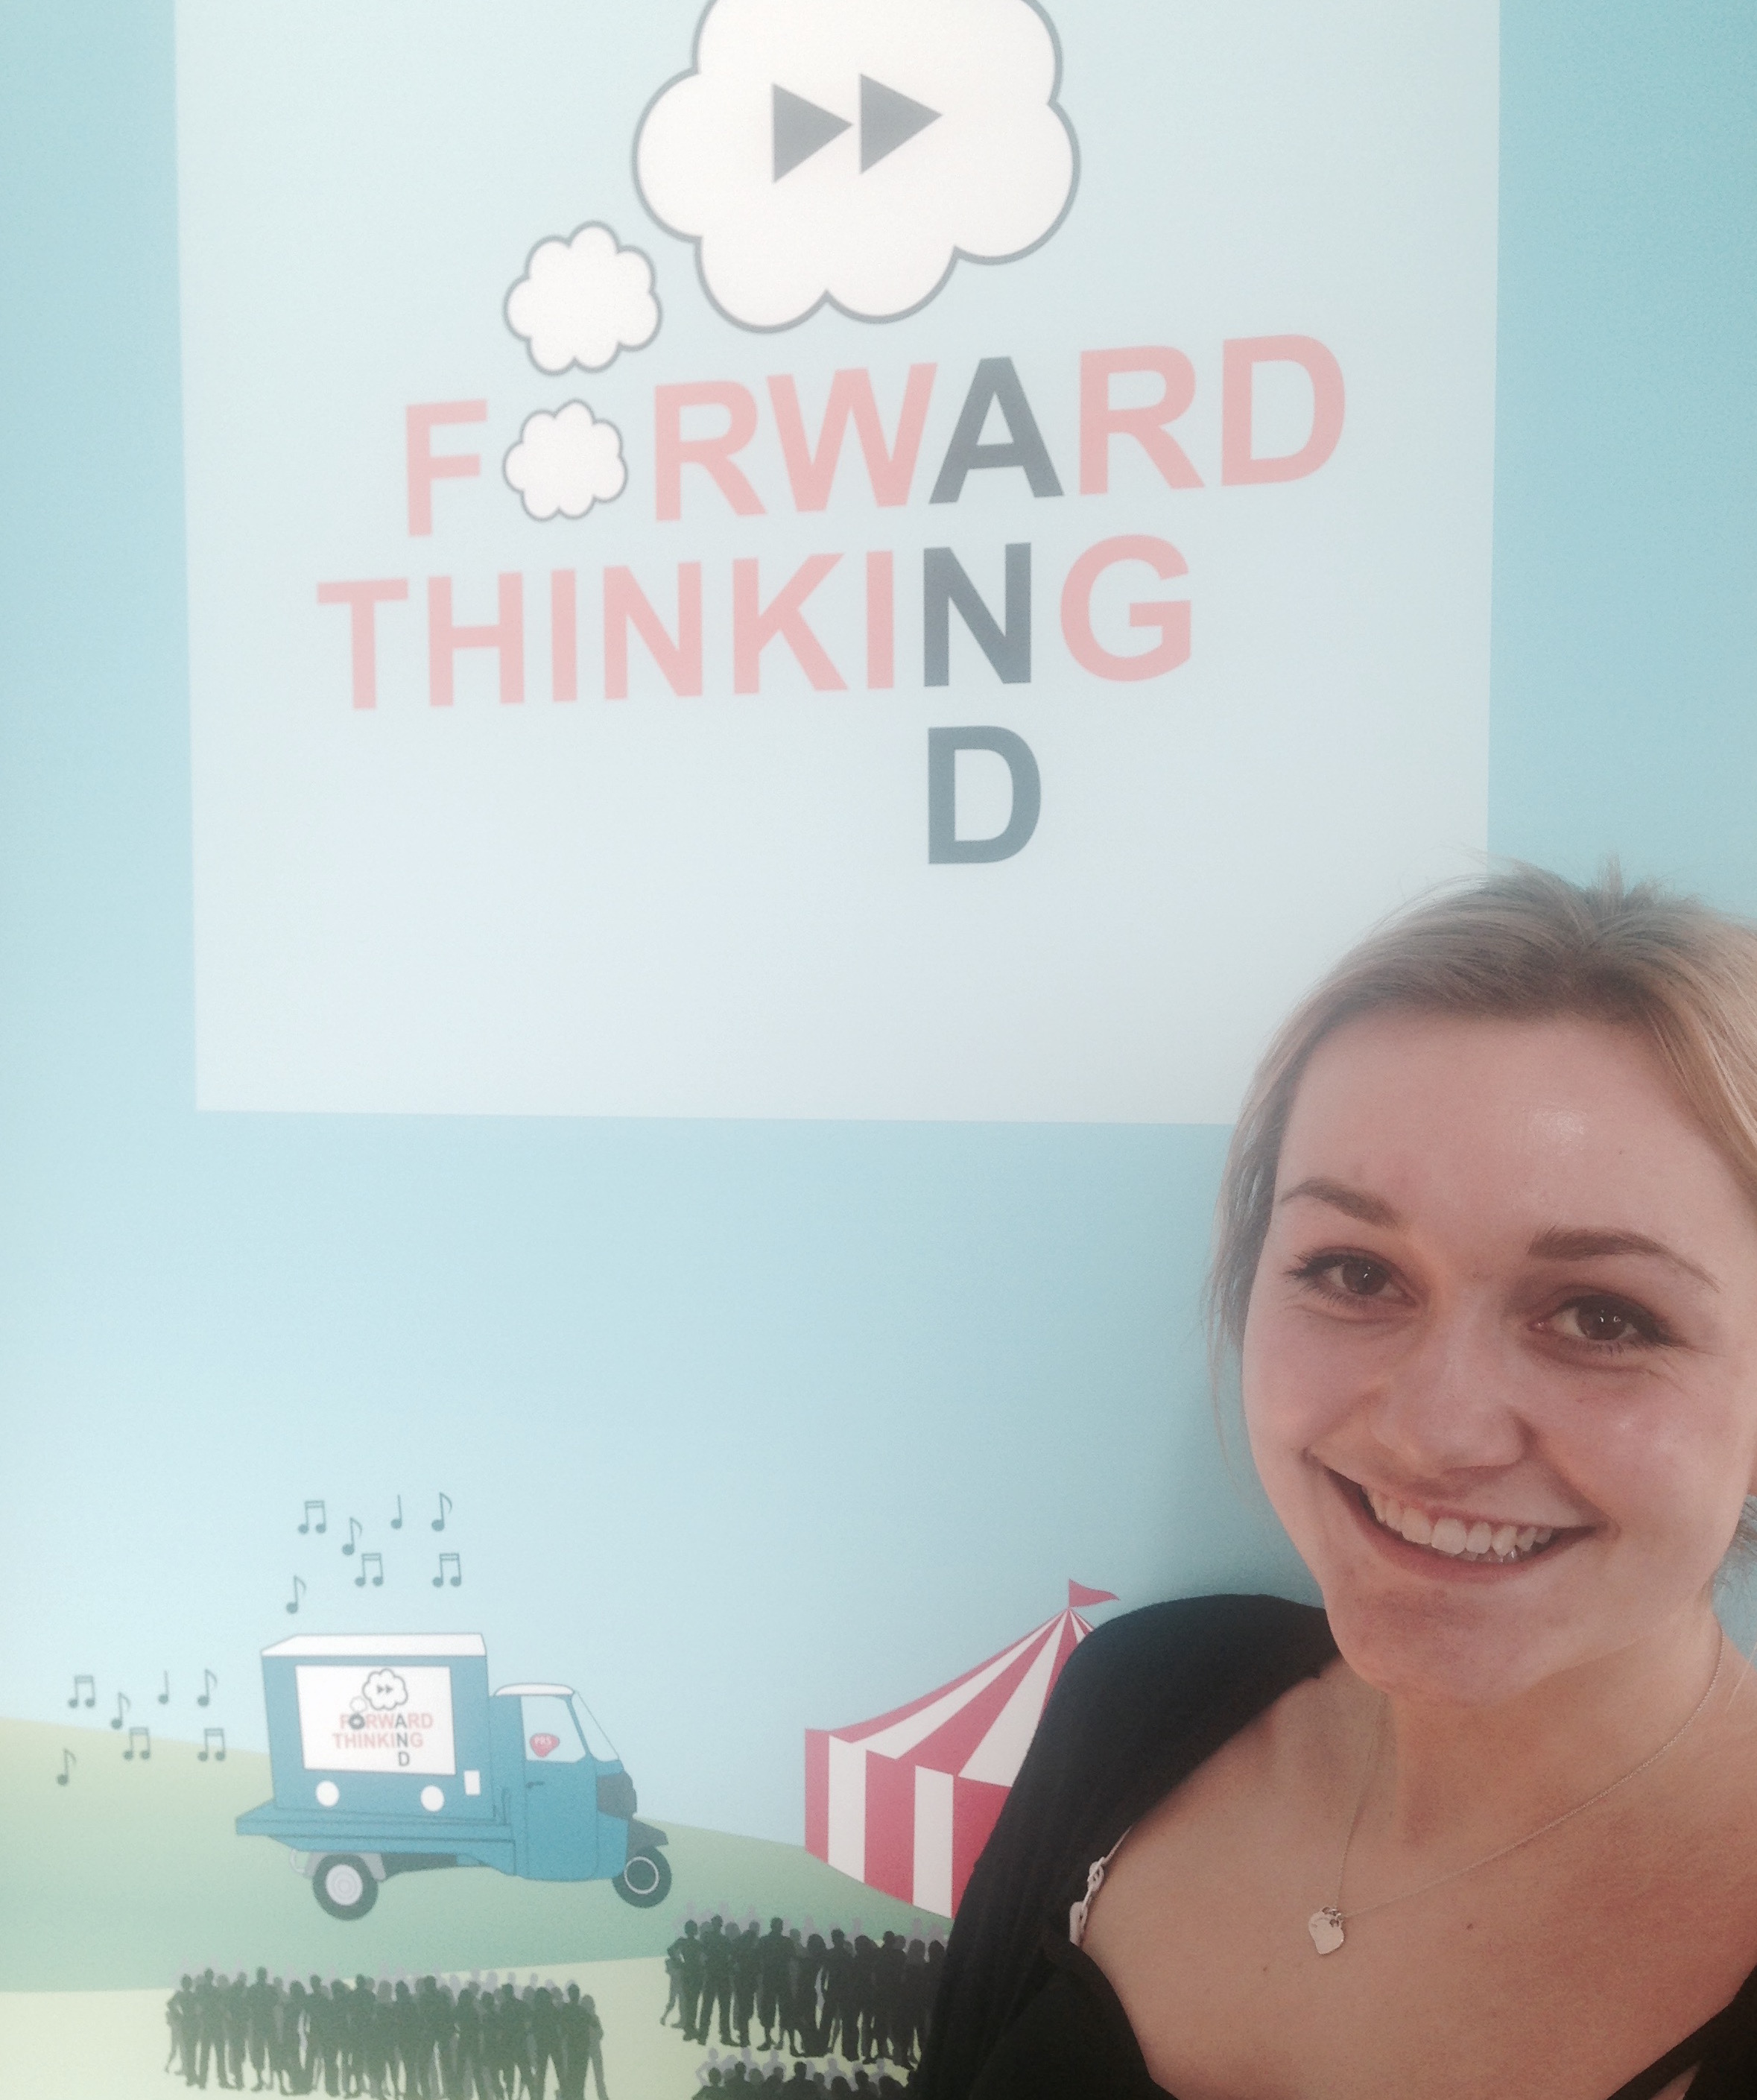 Work Experience with Forward and Thinking